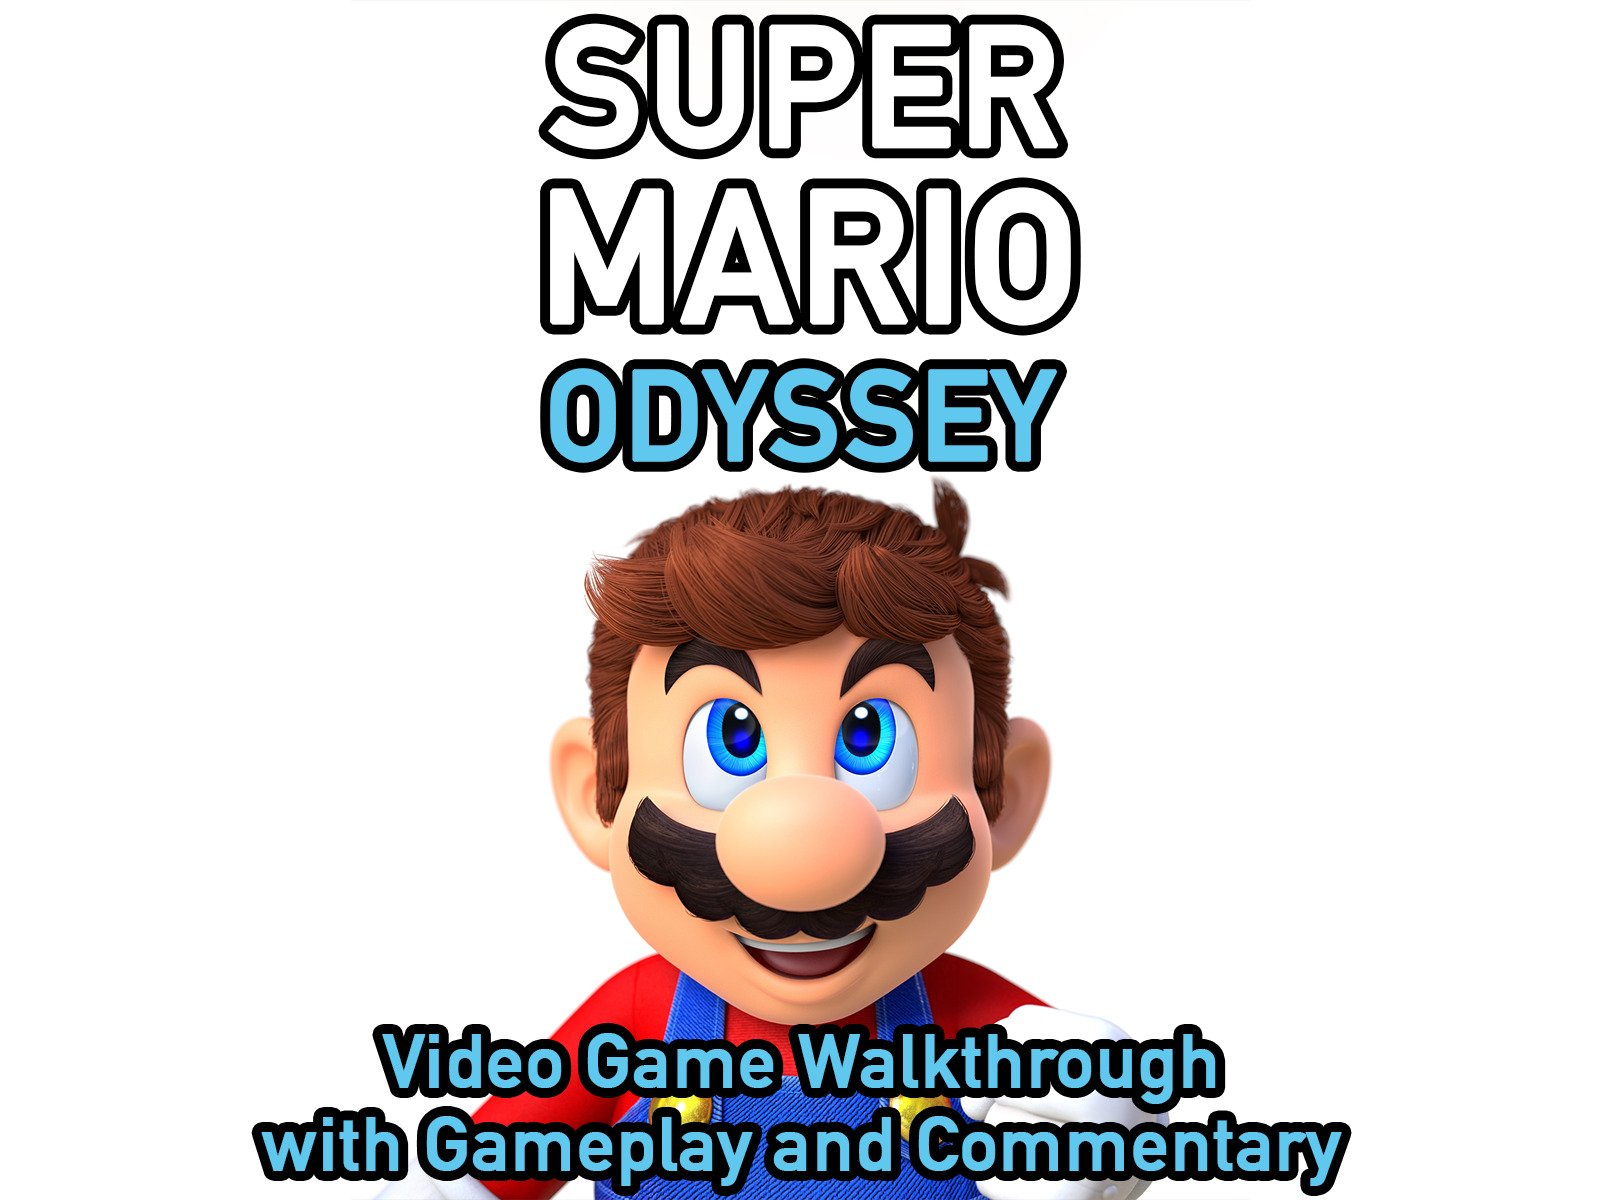 Clip: Super Mario Odyssey Video Game Walkthrough with Gameplay and Commentary - Season 1